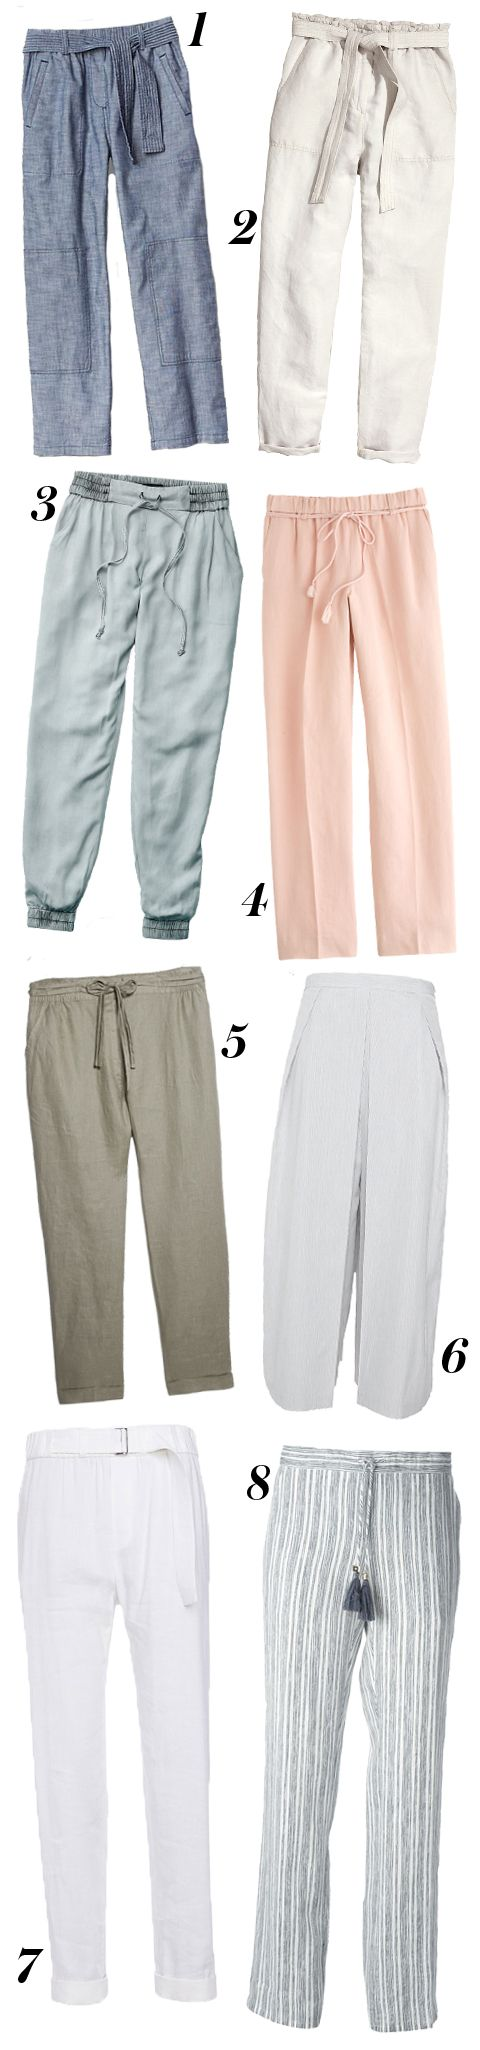 158b3db8f13d Lightweight Pants to Get You Through the First Half of Summer